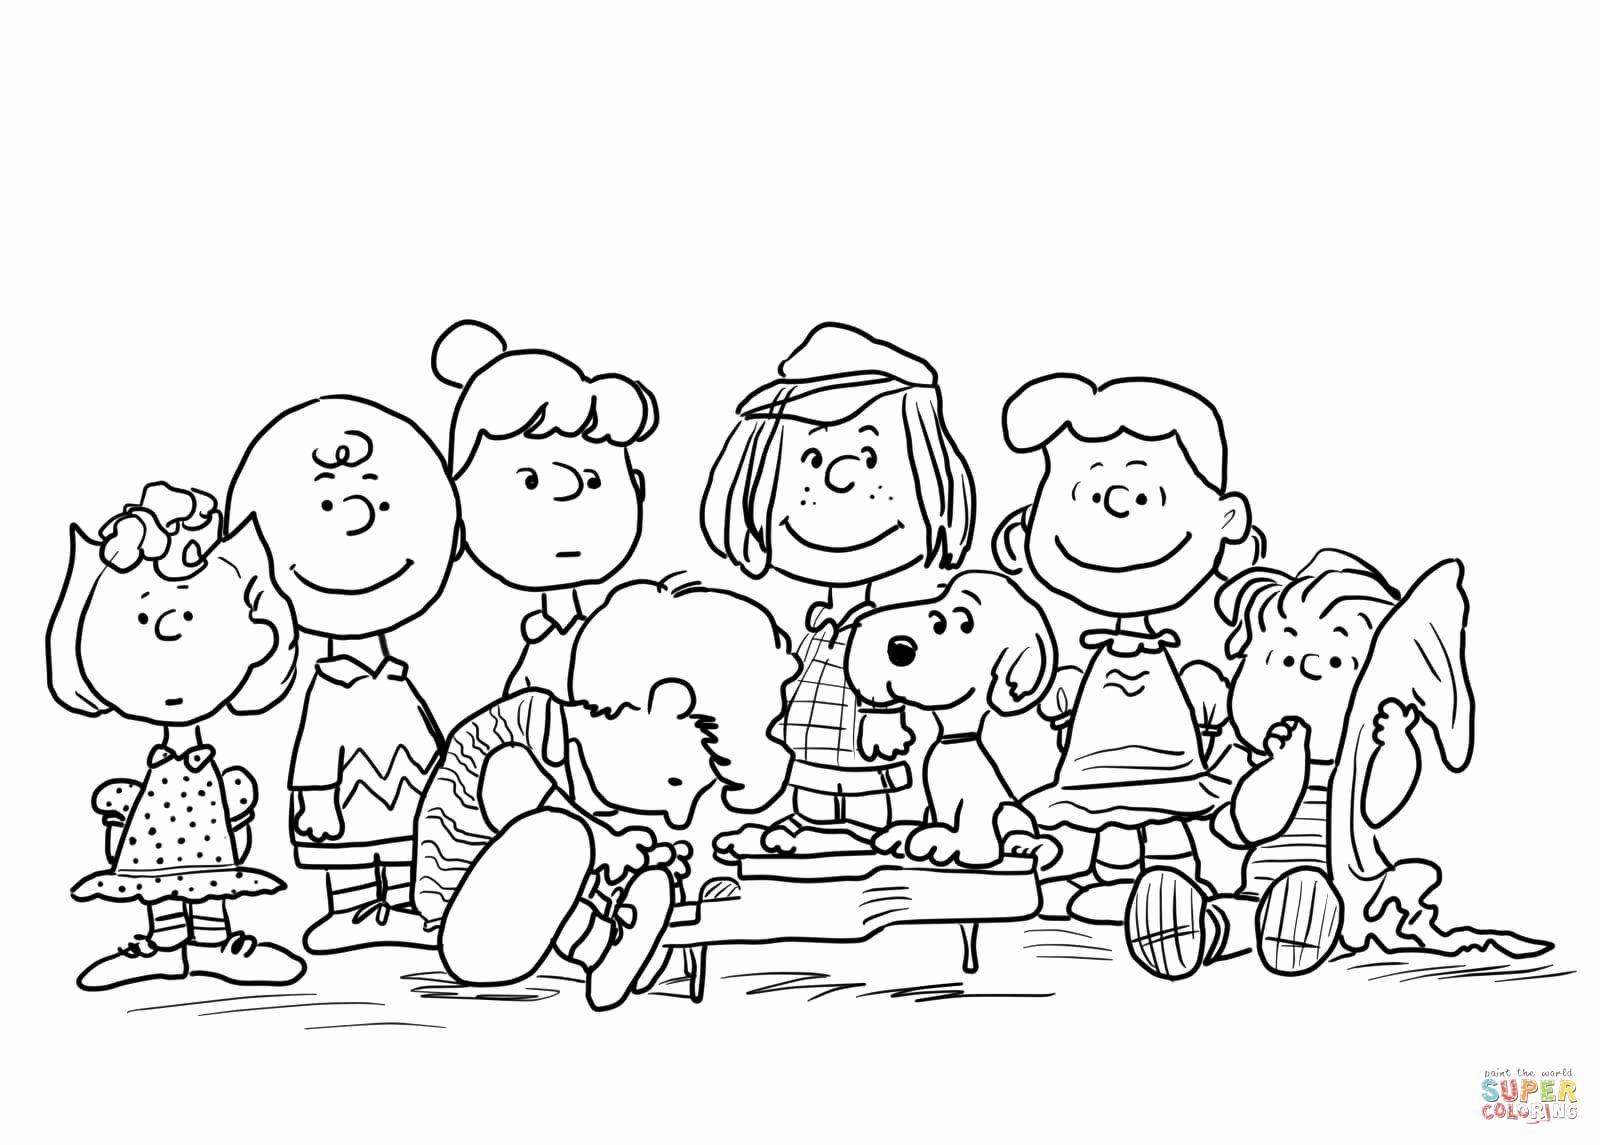 Snoopy Valentines Coloring Pages Luxury Snoopy Valentines Coloring Picture For Kids Viati Colorin In 2020 Snoopy Coloring Pages Cartoon Coloring Pages Coloring Pages